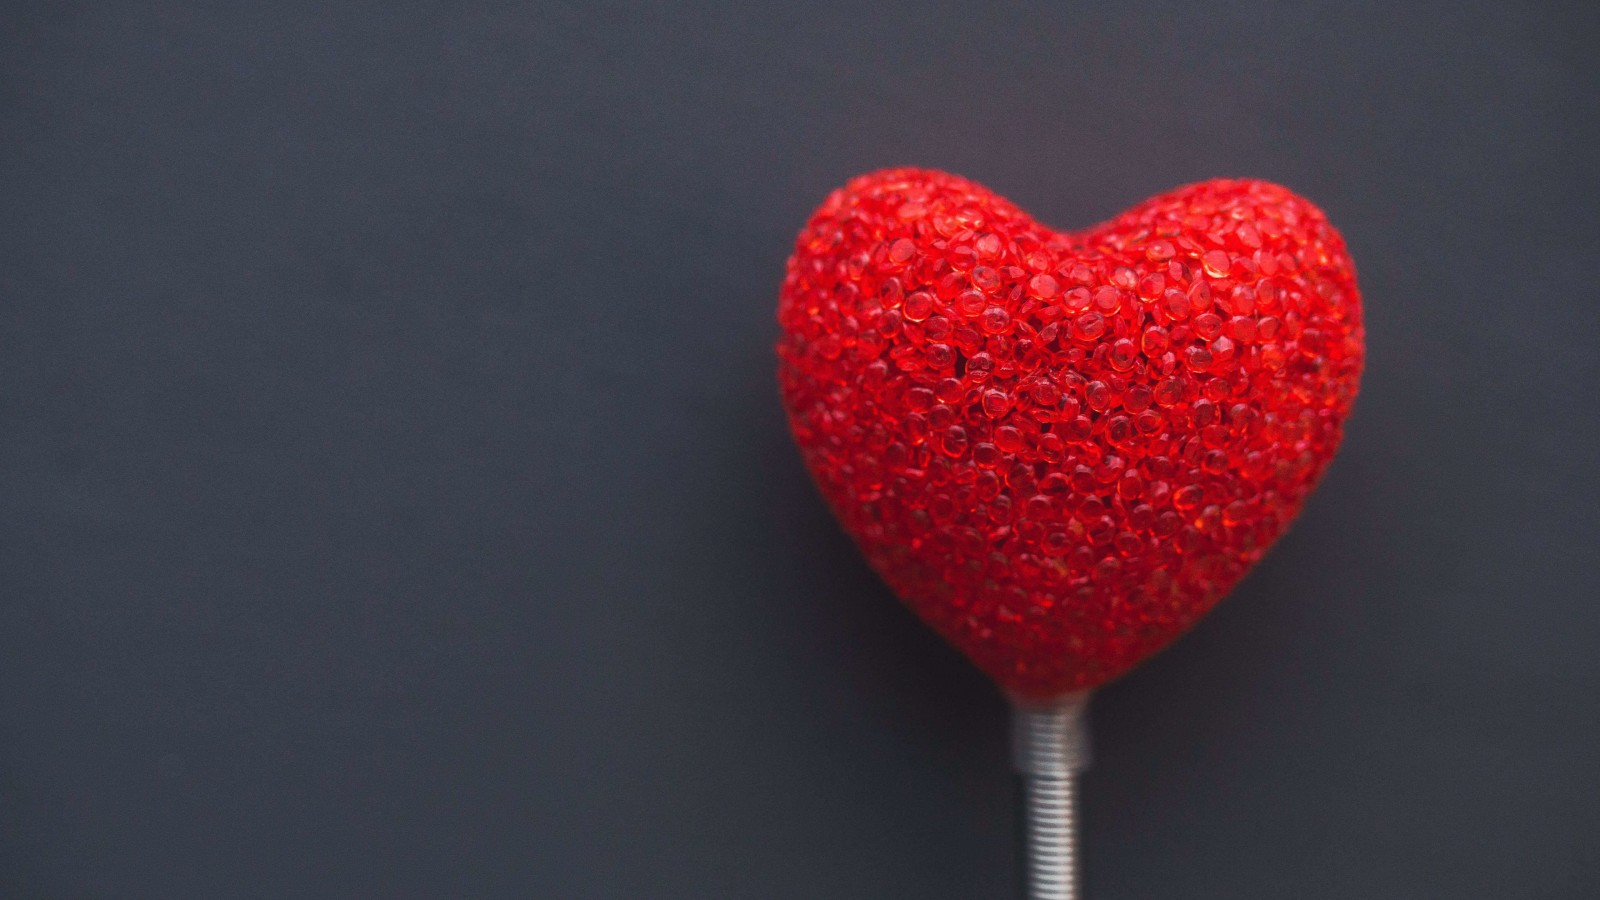 Red Heart Lollipop Wallpaper for Desktop 1600x900